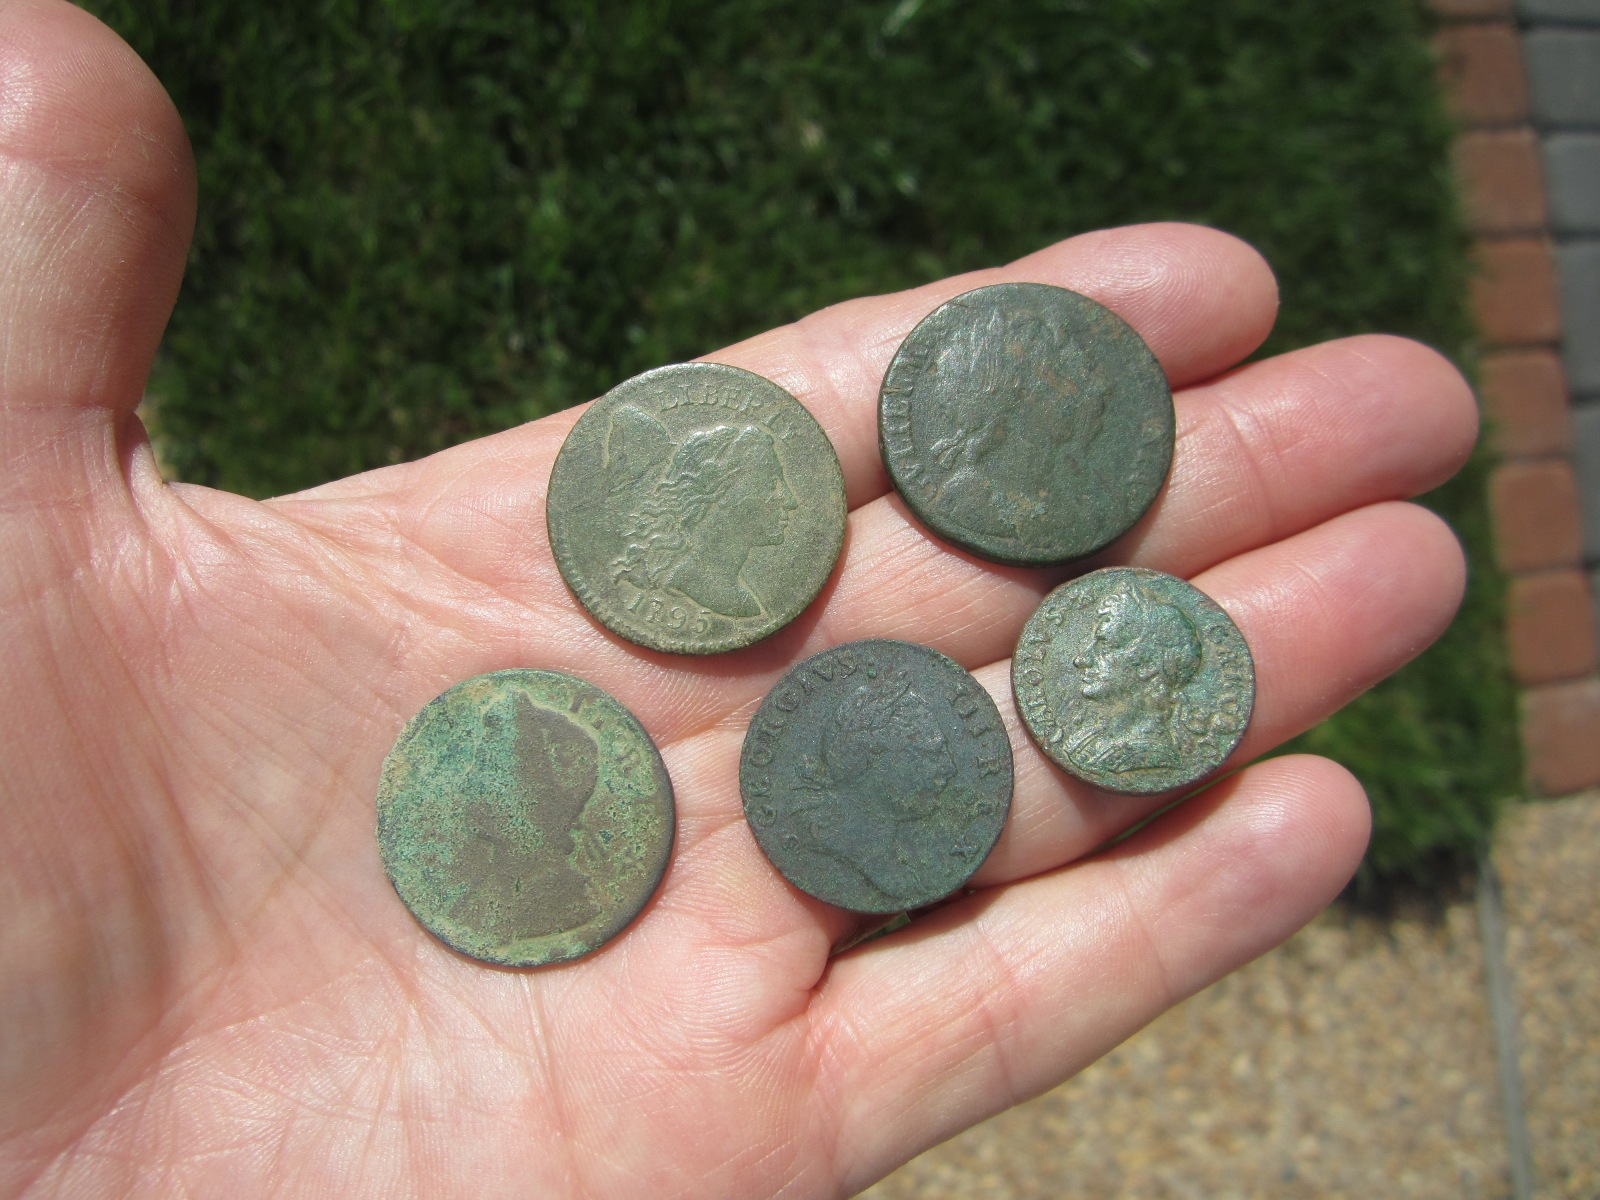 fisher metal detector finds